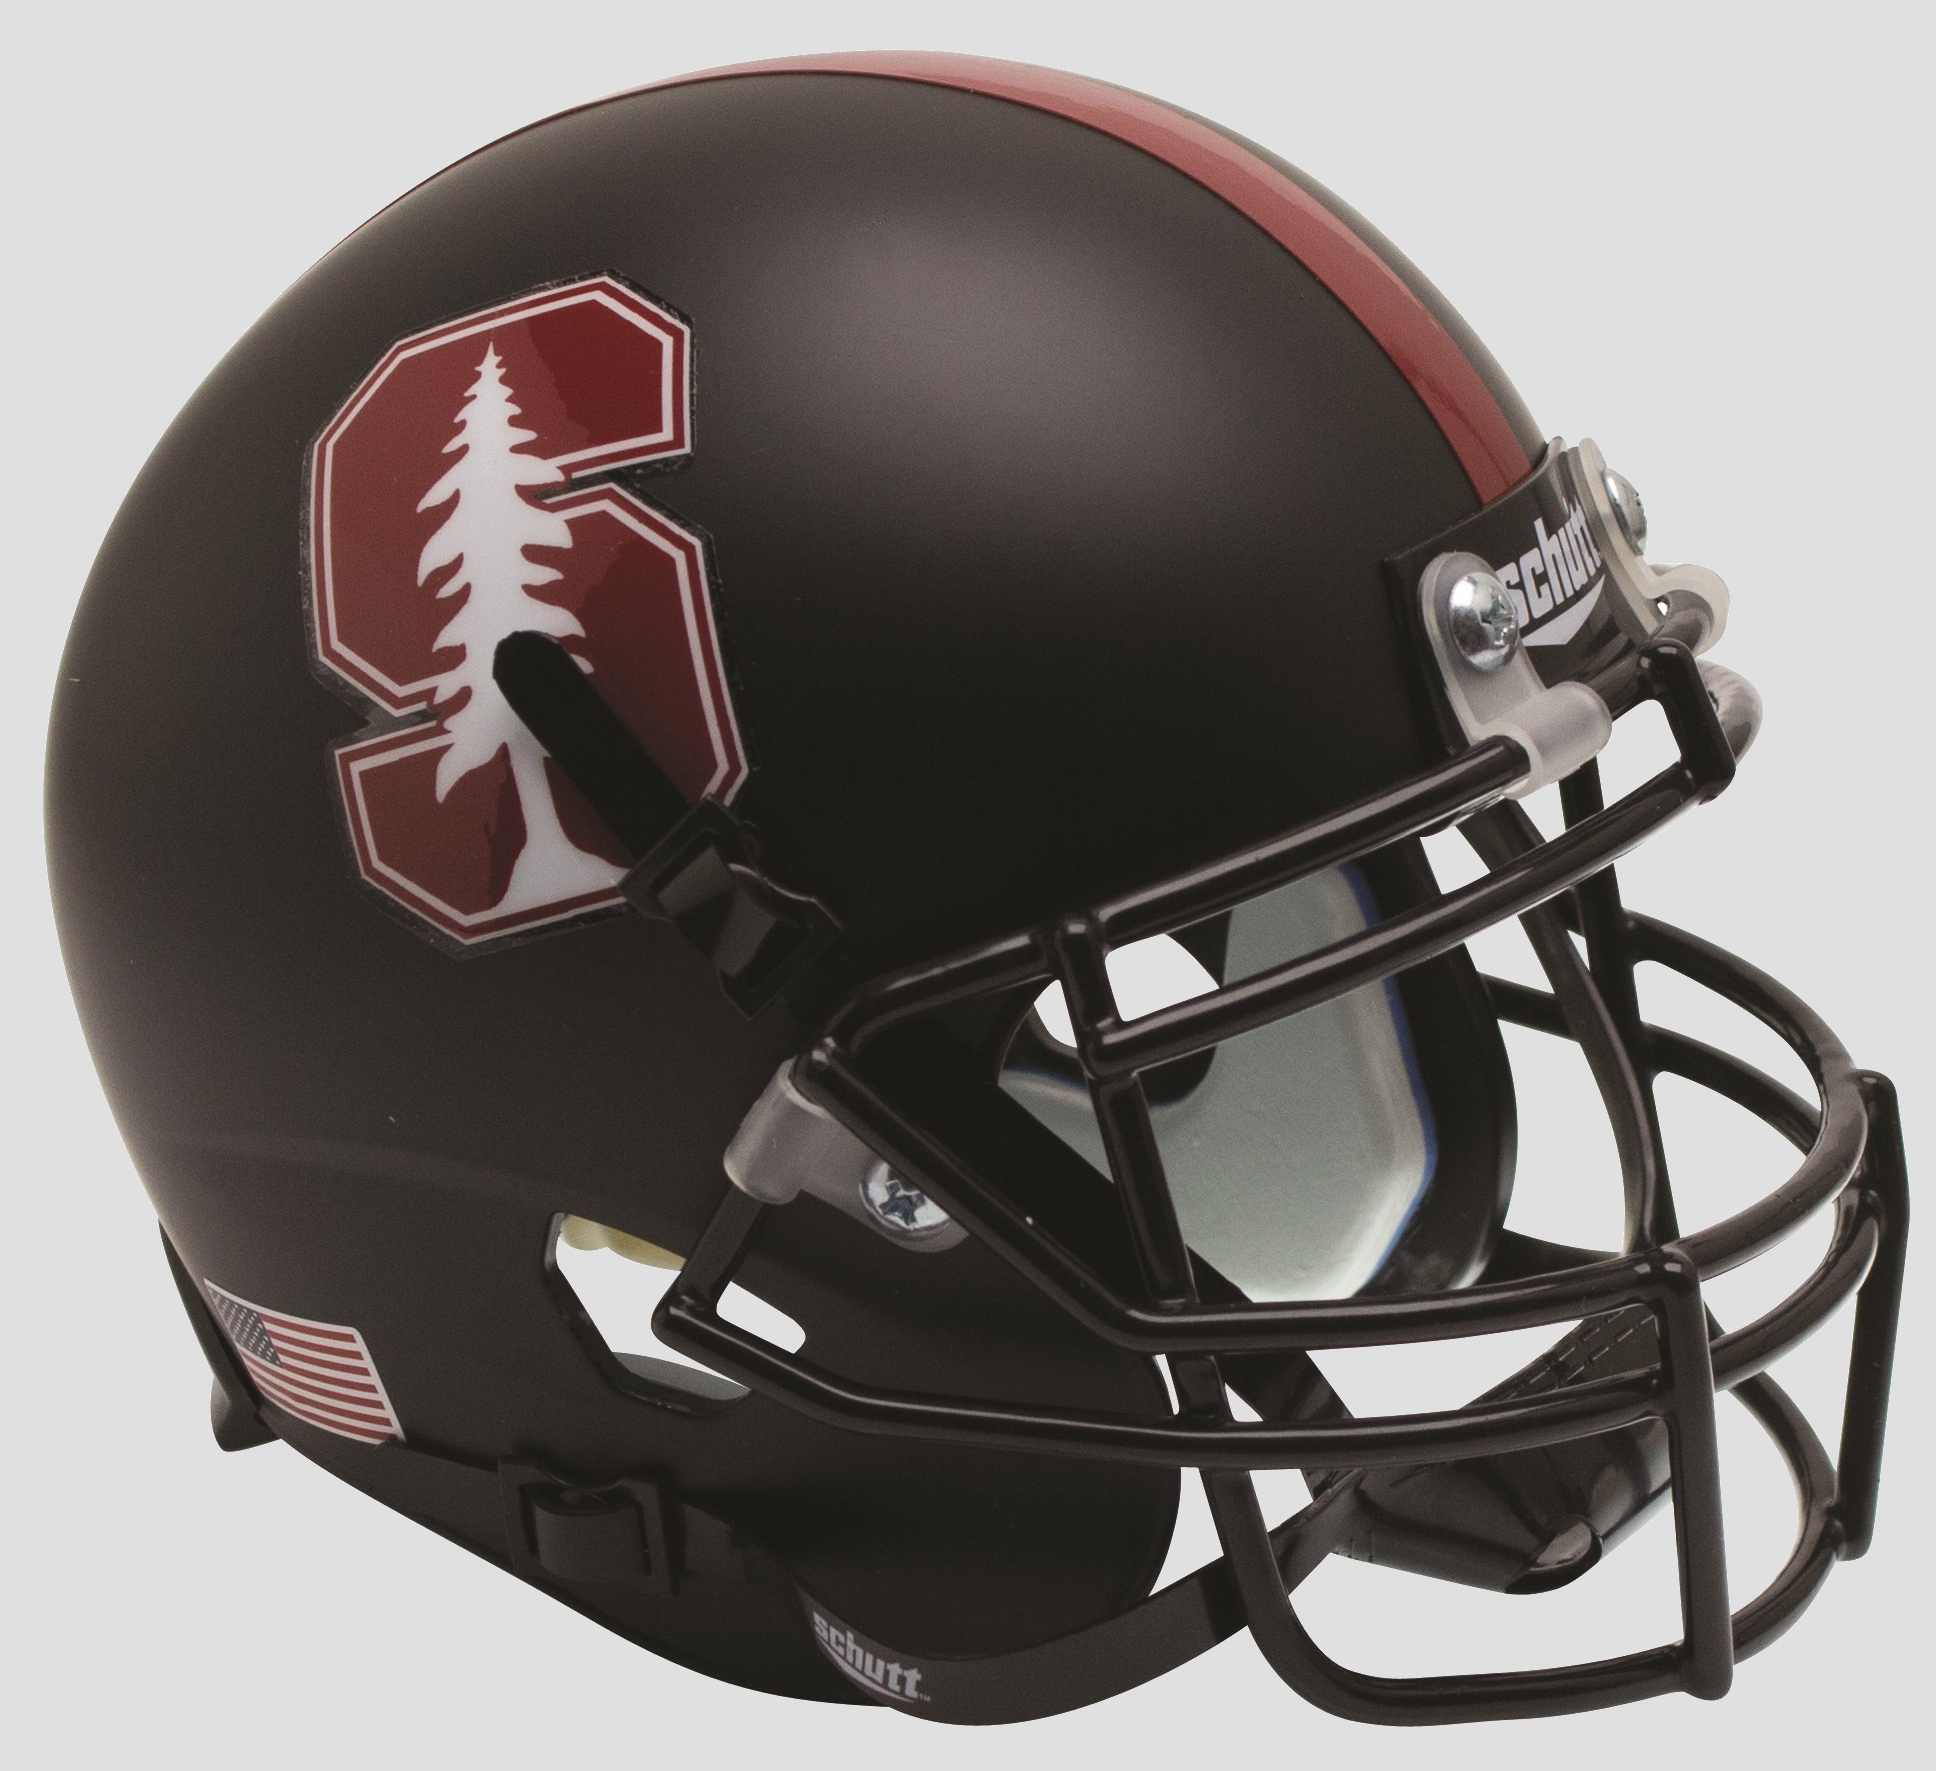 Stanford Cardinal Mini XP Authentic Helmet Schutt <B>Matte Black Tree</B>